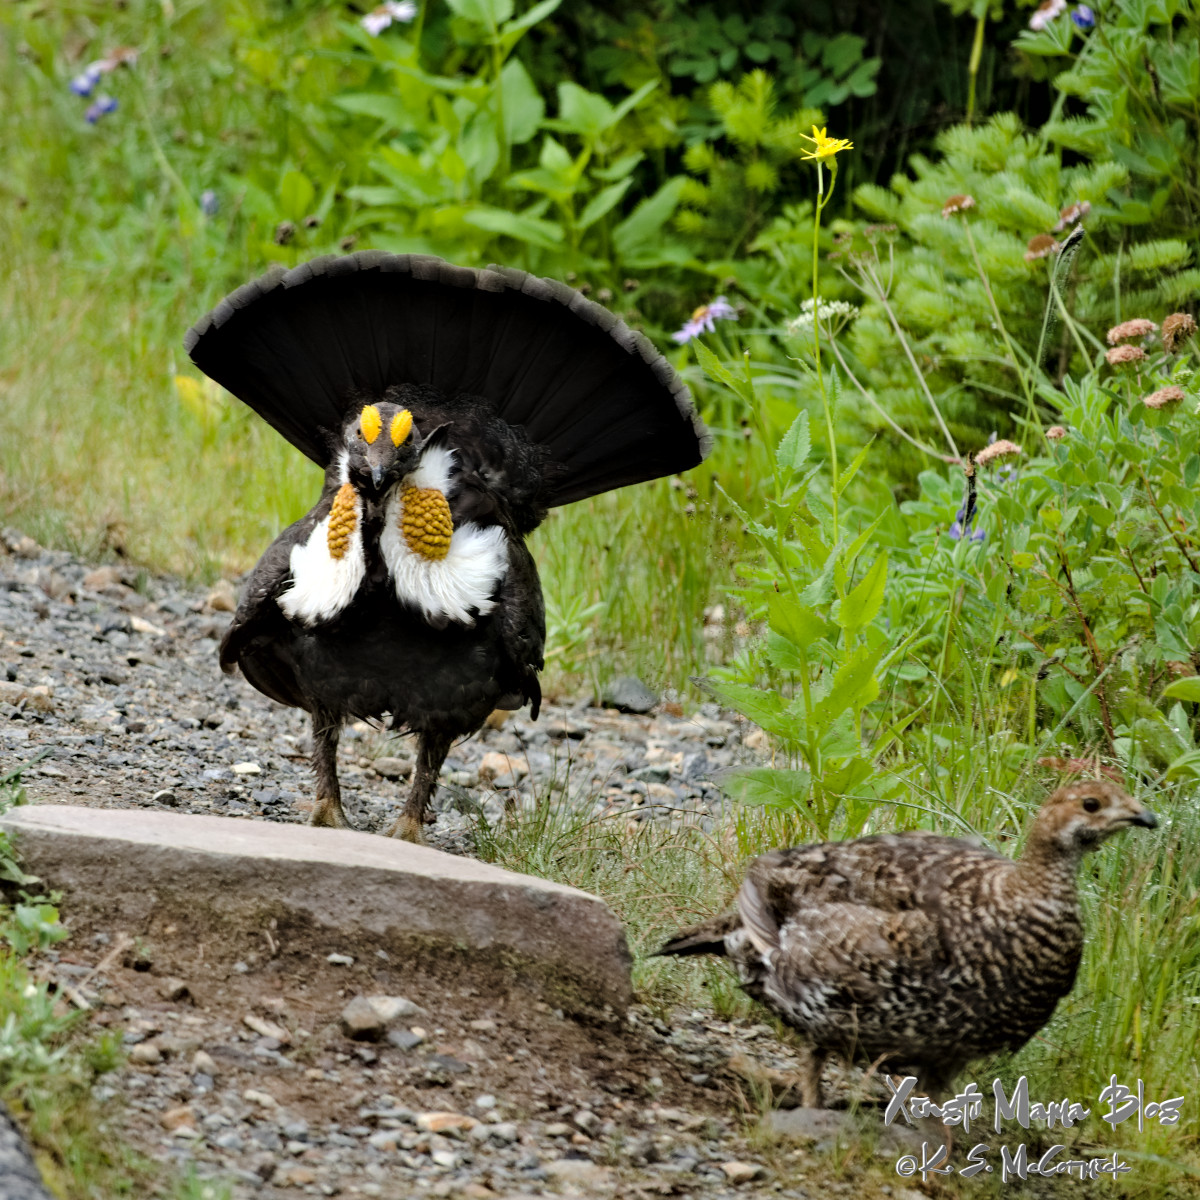 Blue grouse courting: the male has his tail spread and bright yellow facial spots showing.